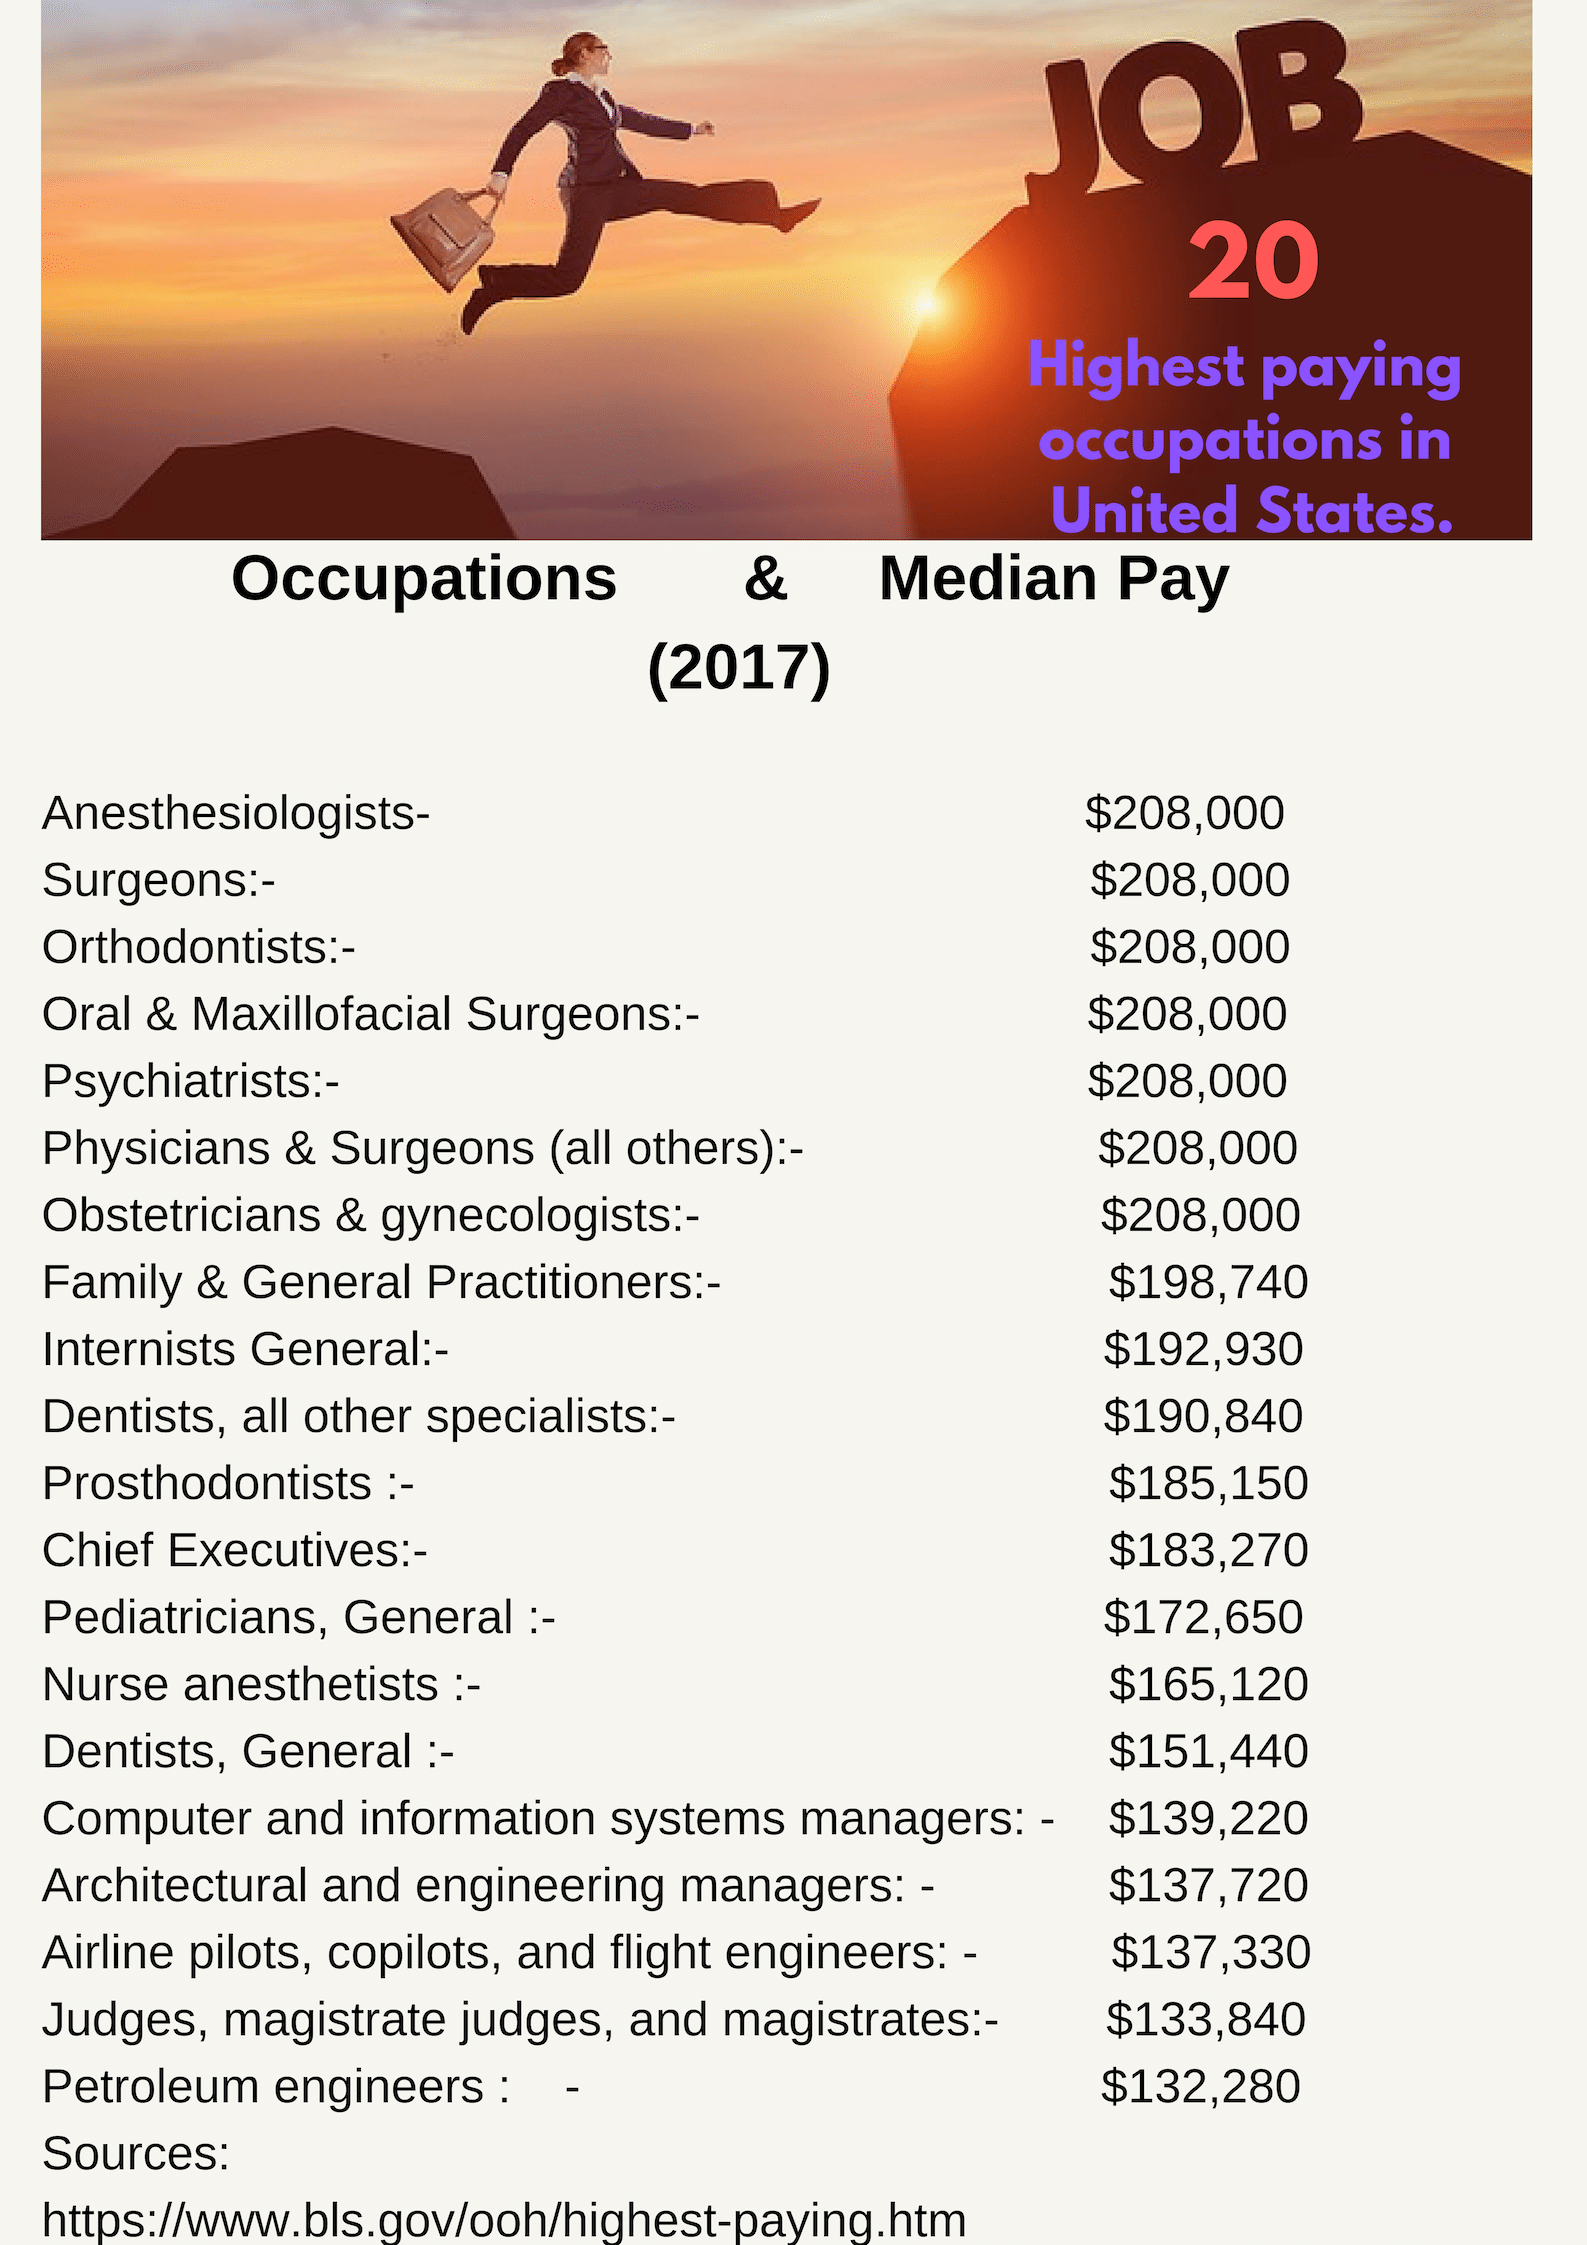 HIghest Paid Occupations in United States